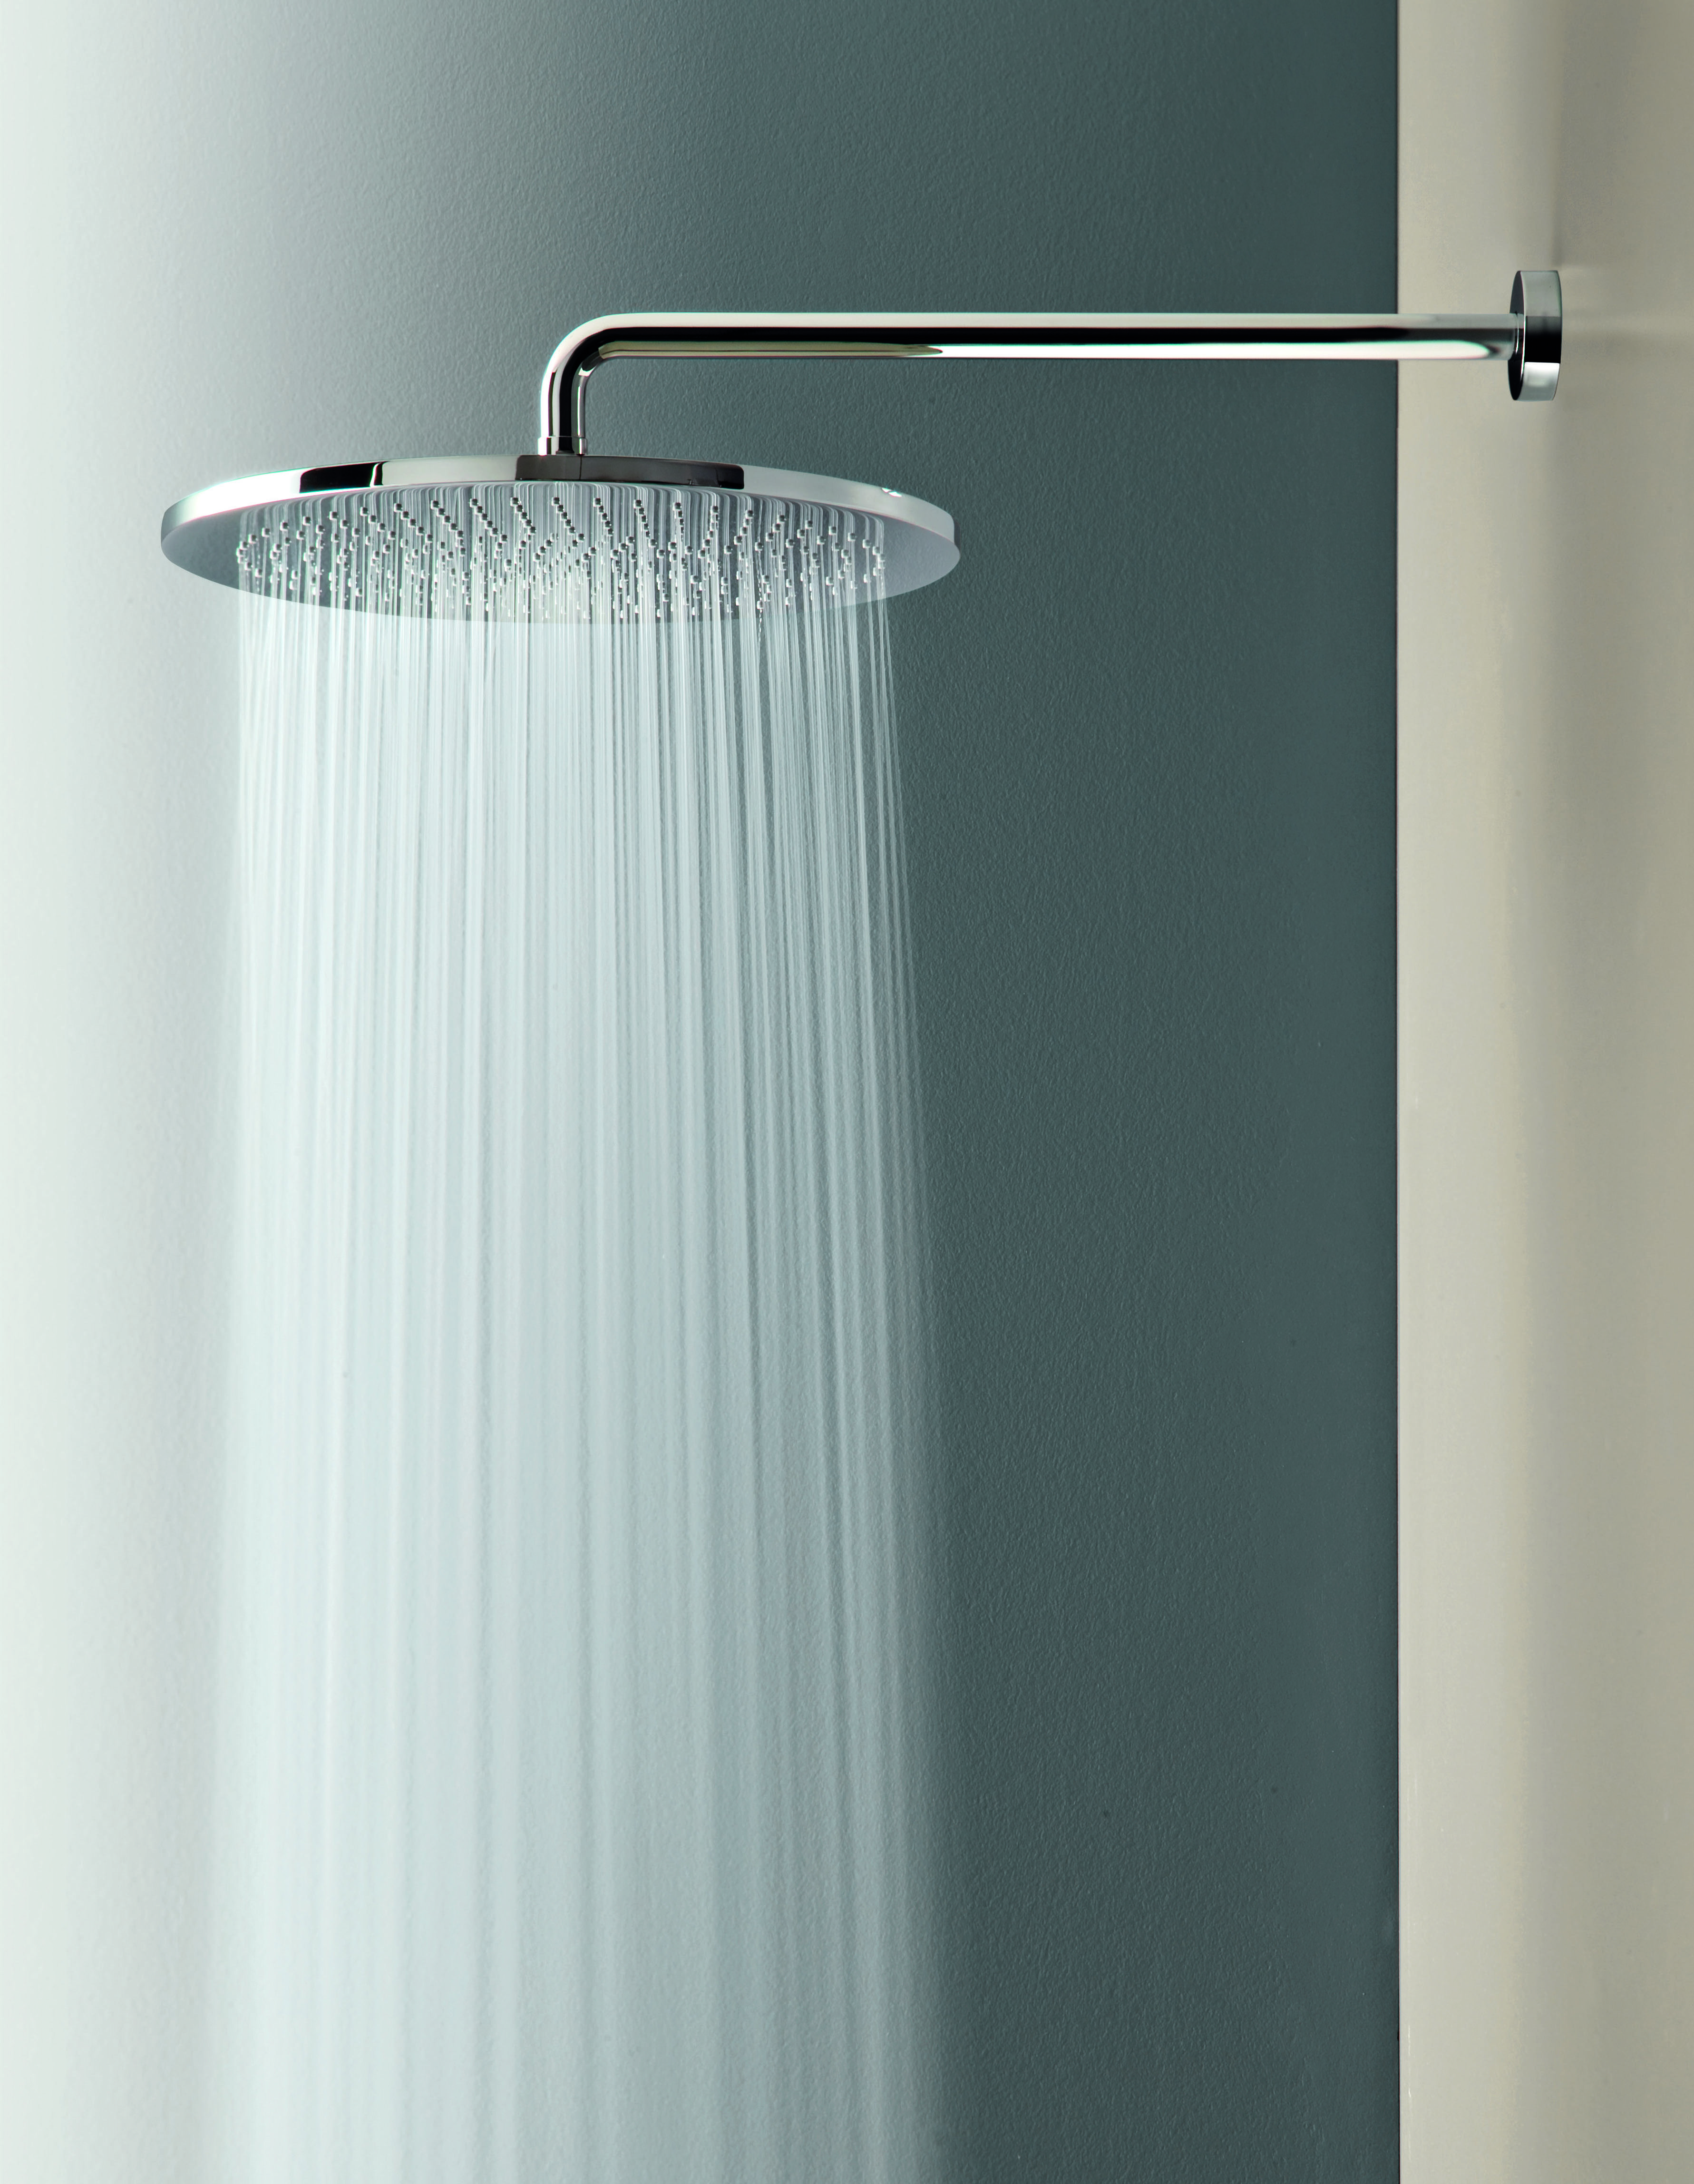 Transitional Nostromo Wall Mount Shower Set by Fantini | Fantini ...